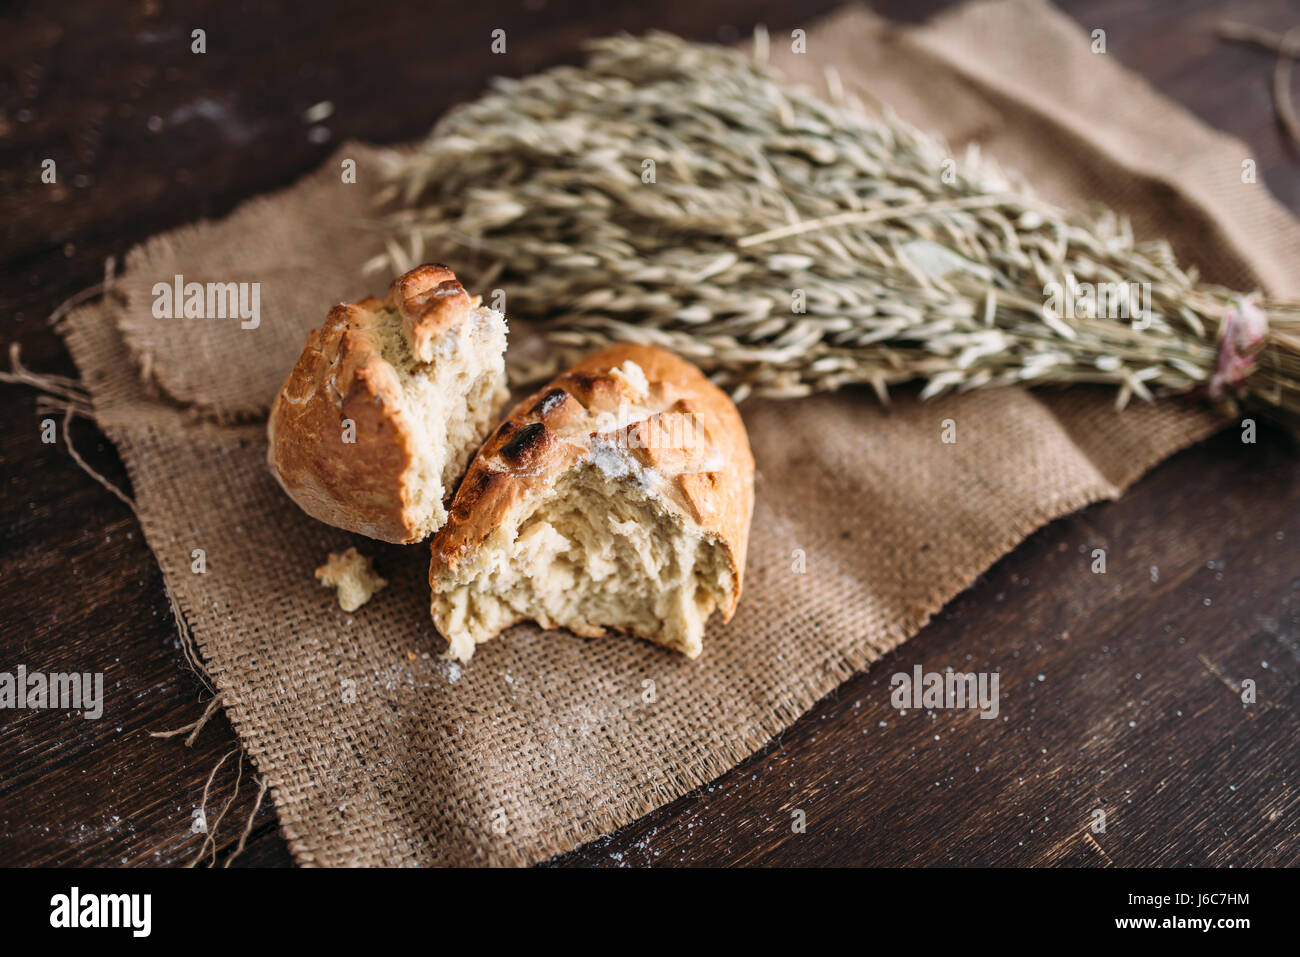 Fresh baked bread loaf with crispy crust breaked in half and wheat bunch on burlap cloth. Homemade bakery concept, - Stock Image